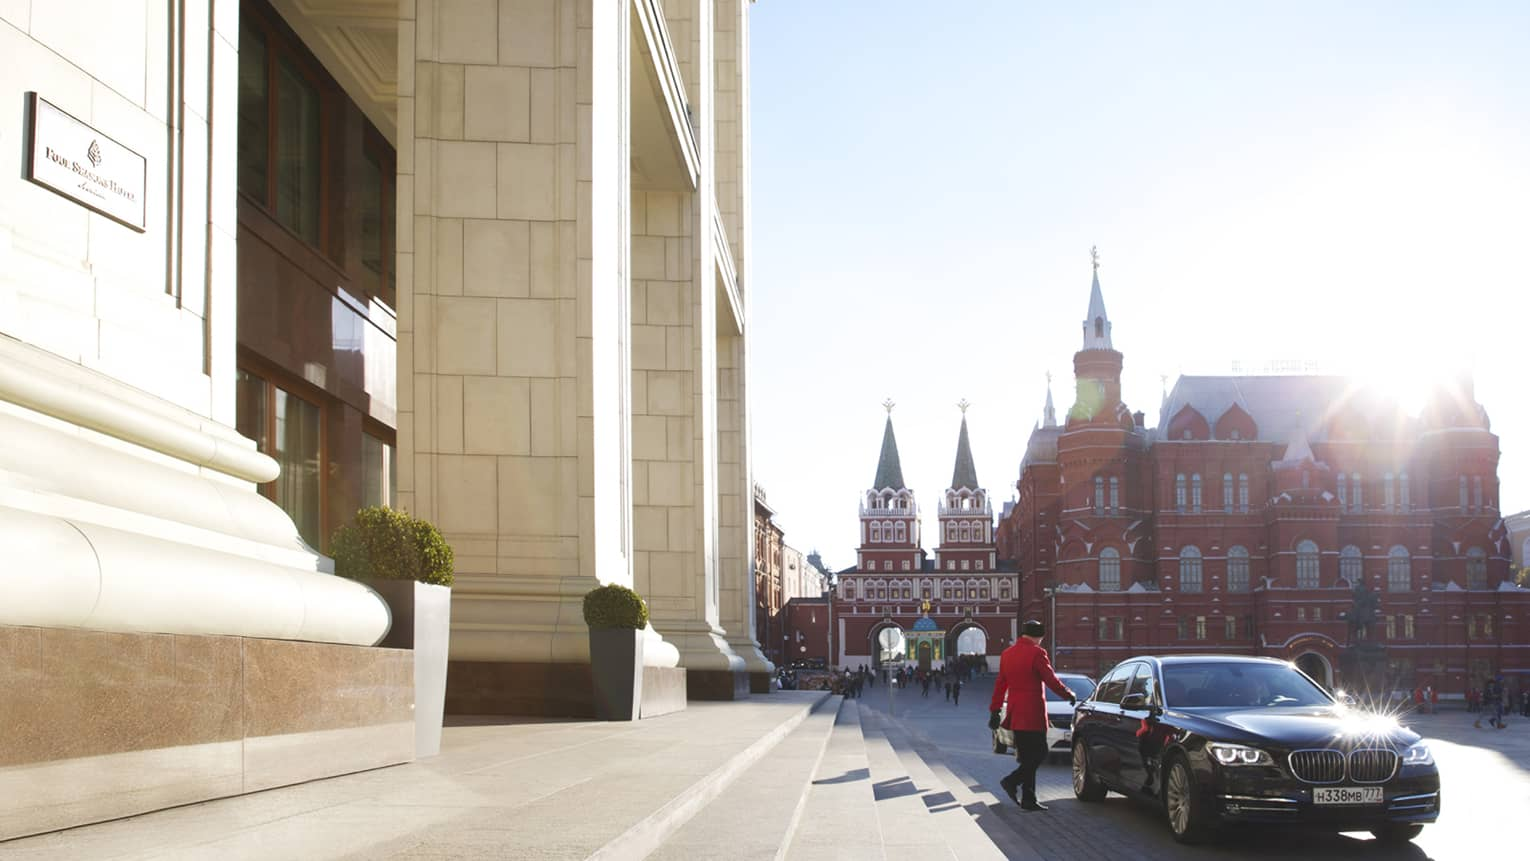 Sunny Four Seasons Hotel Moscow, doorman wearing red jacket walks towards luxury car